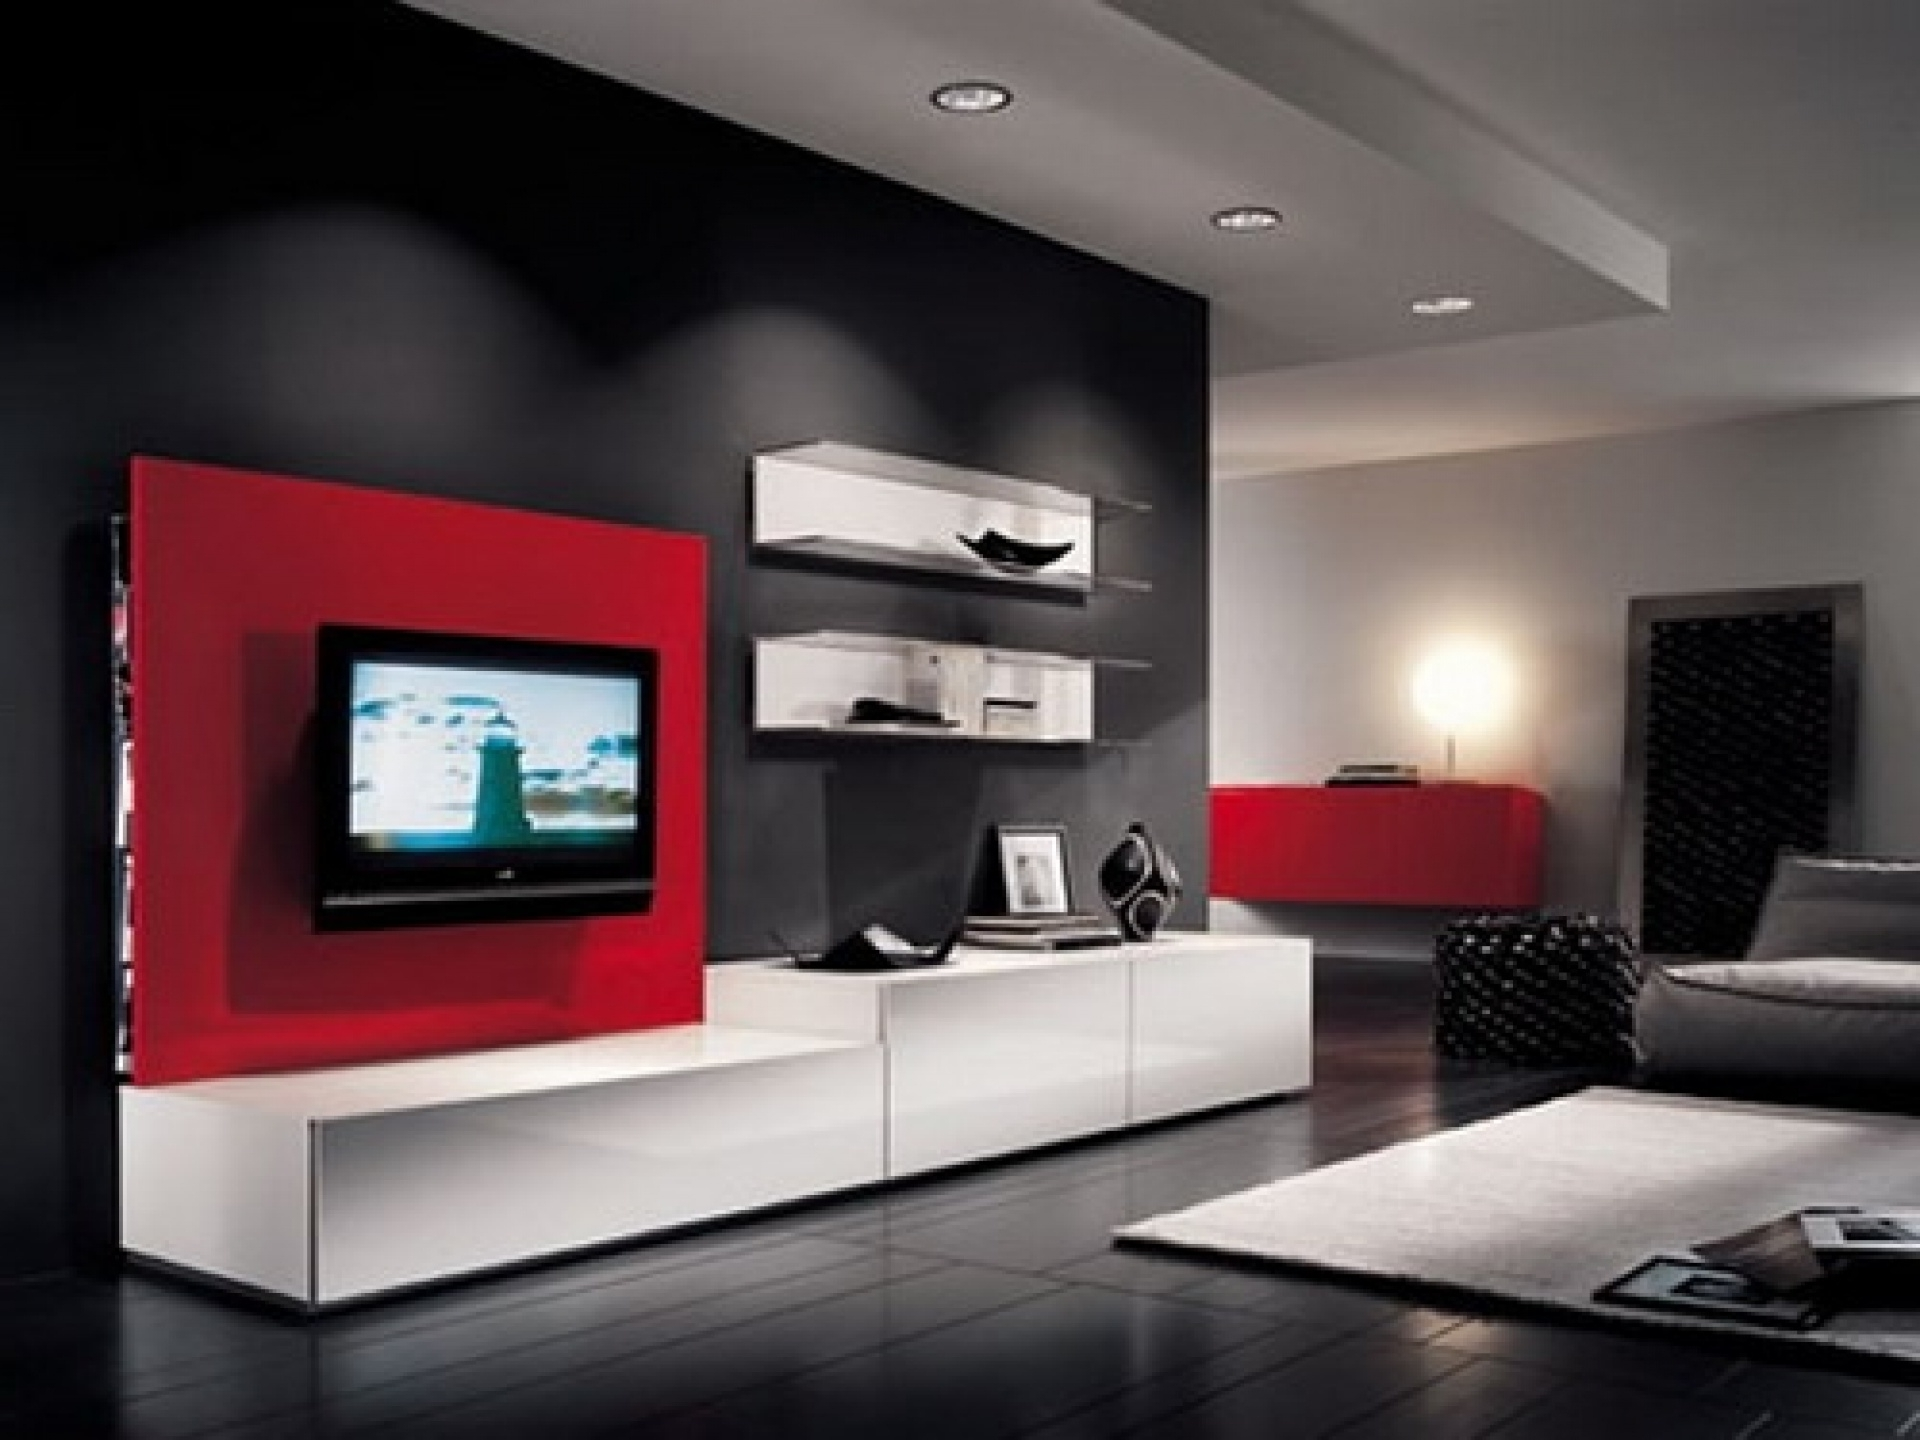 Unforgettable Beautiful Red And White Living Room Design 40+ Modern Living Room Design 2012 Ideas